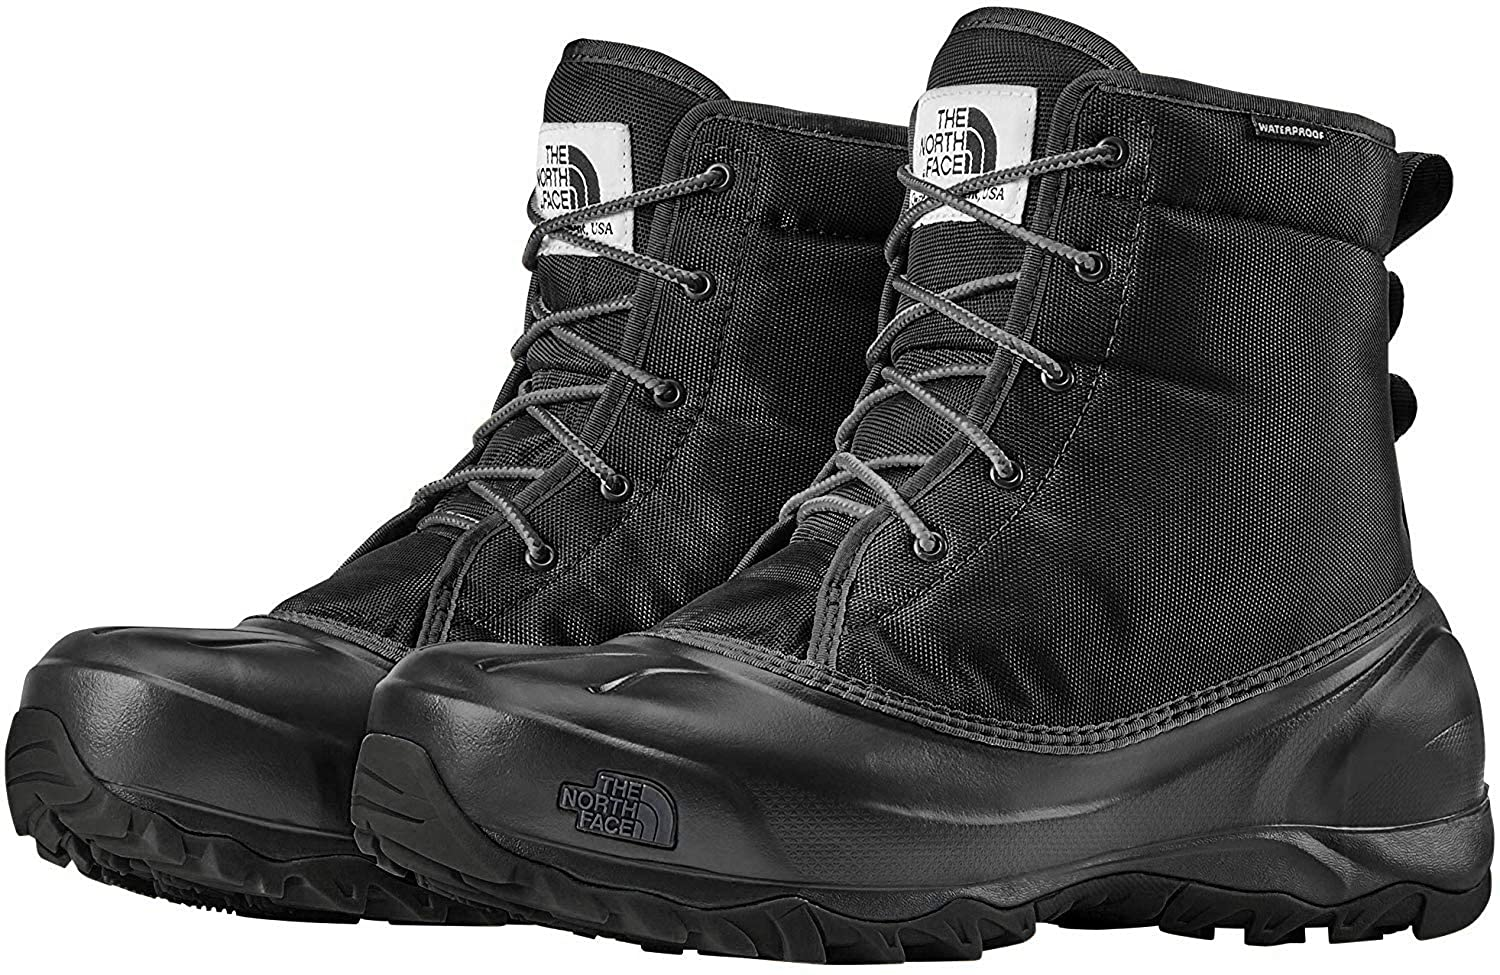 TALLA 40.5 EU. The North Face M Tsumoru Boot, Botas de Nieve para Hombre